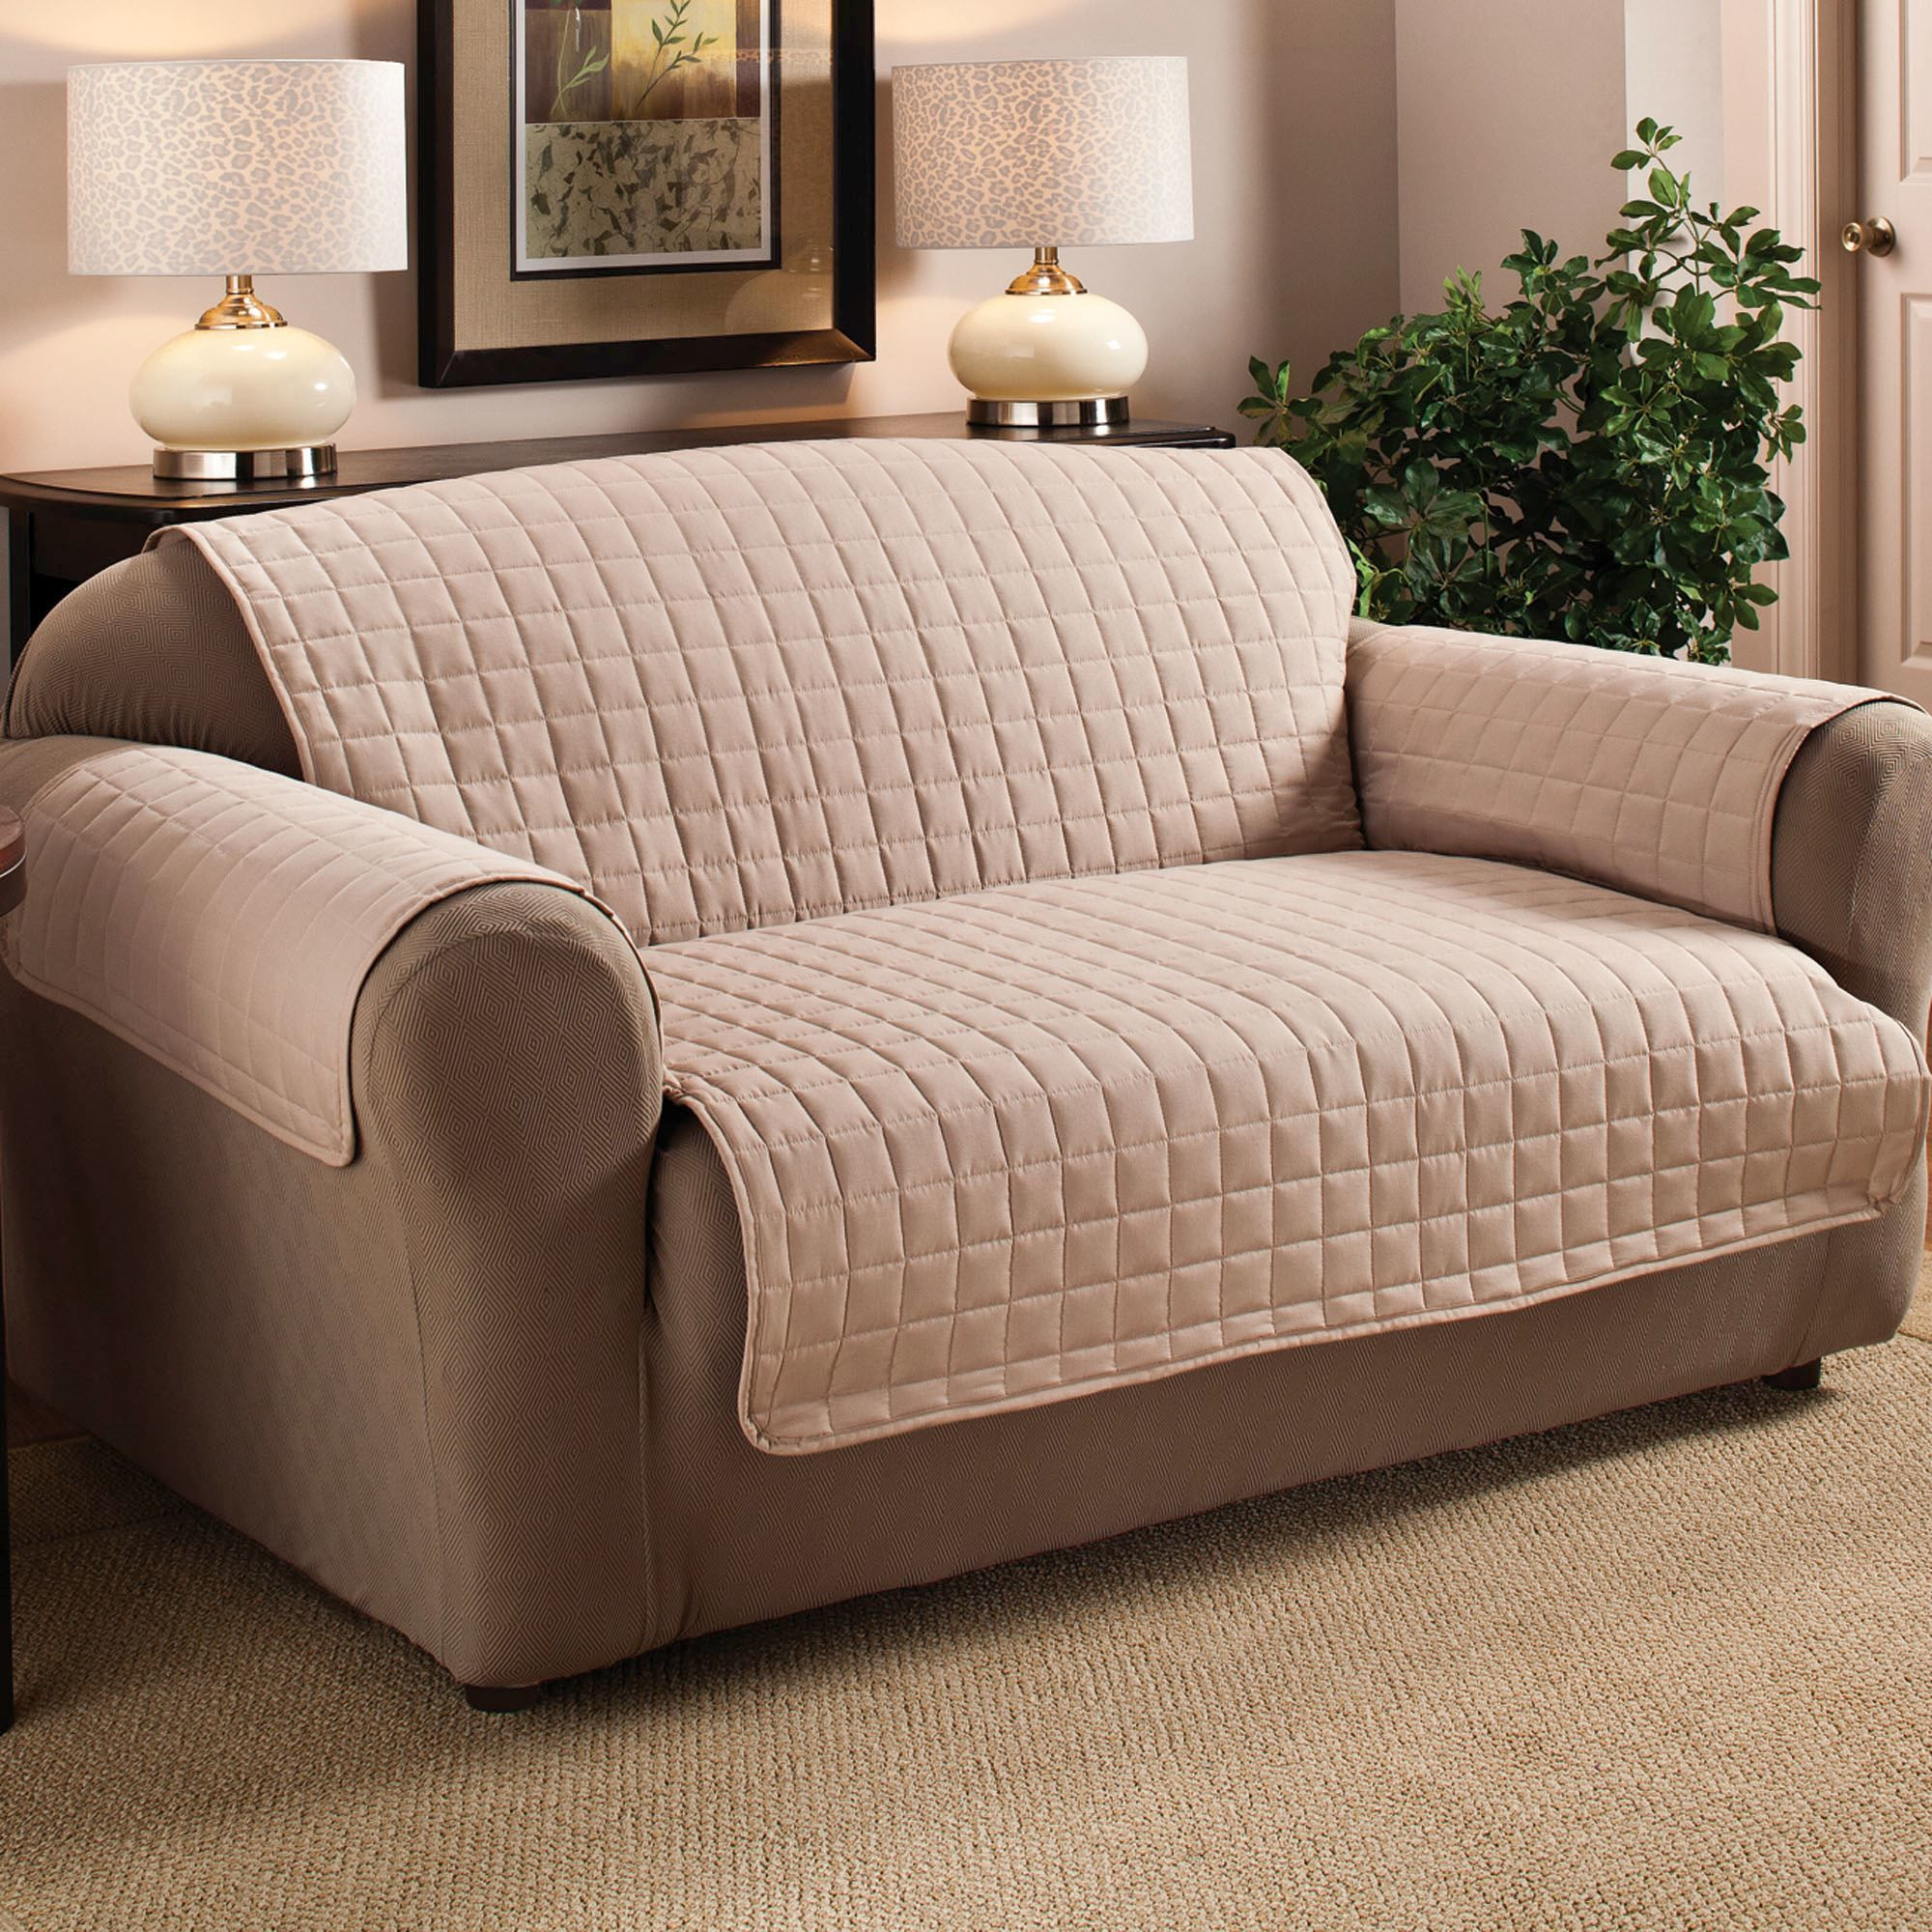 best sofa covers bed bath and beyond decoration-Fascinating sofa Covers Bed Bath and Beyond Photo